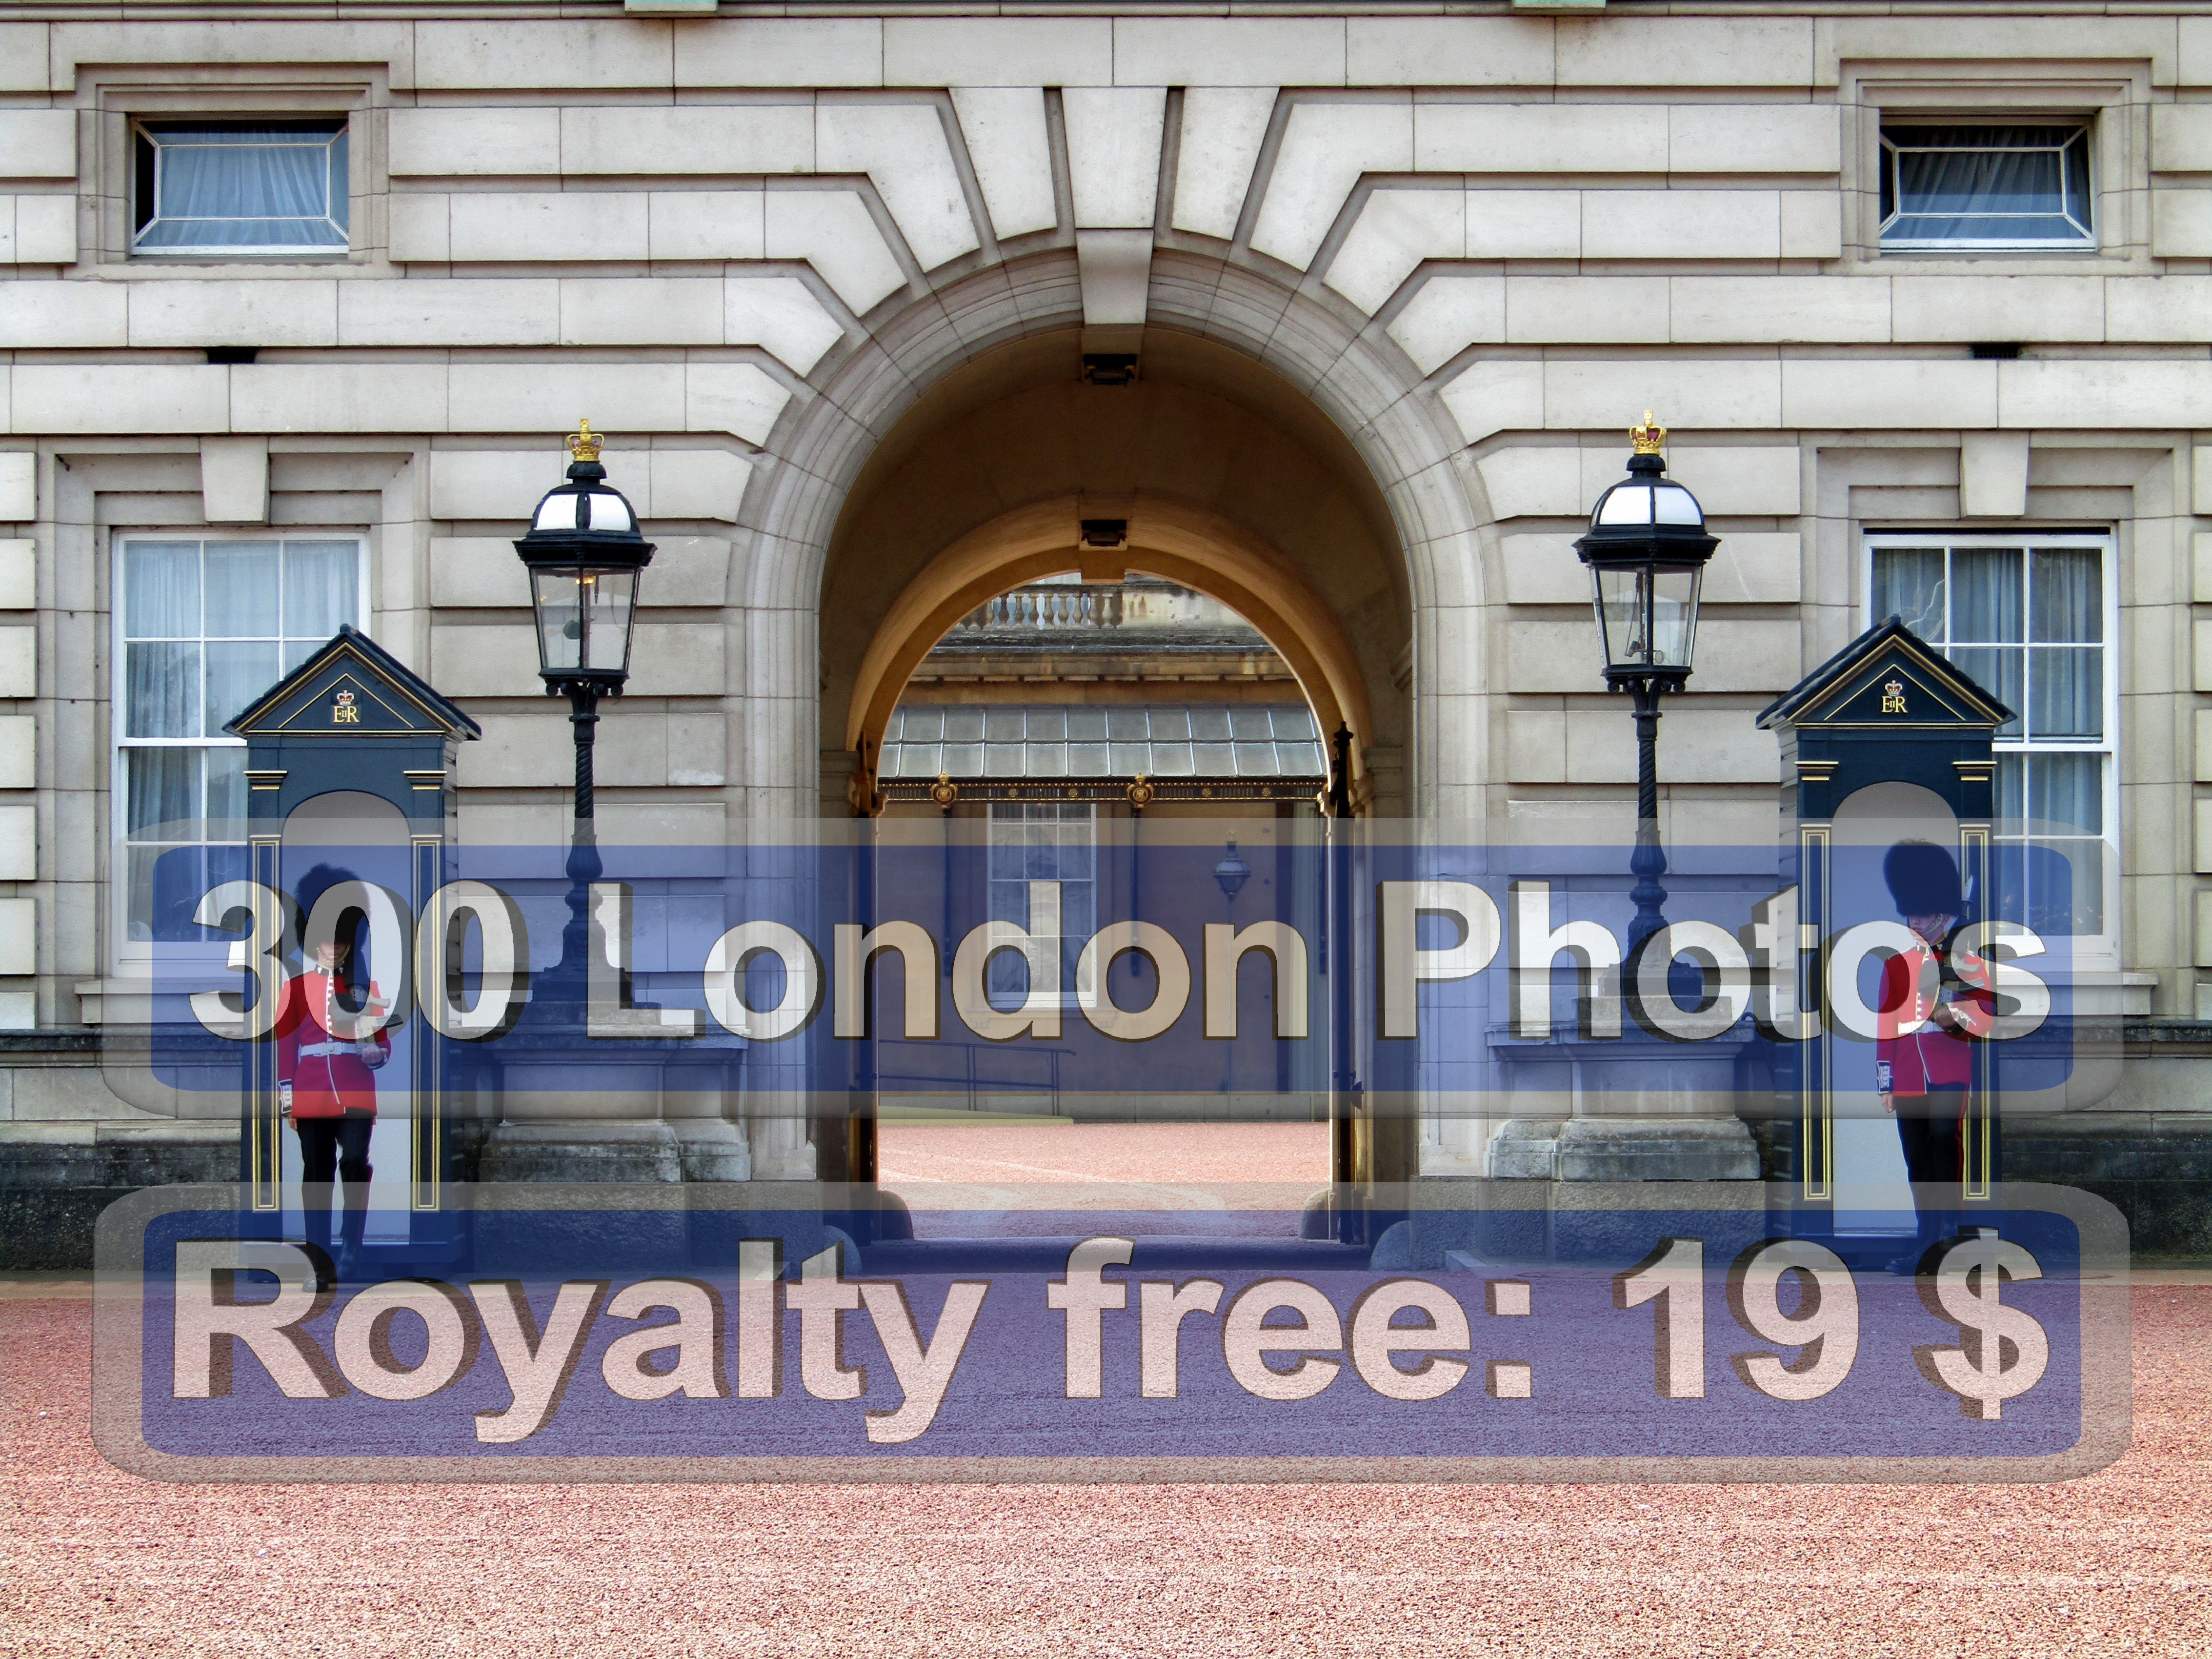 King's College London Photo 51